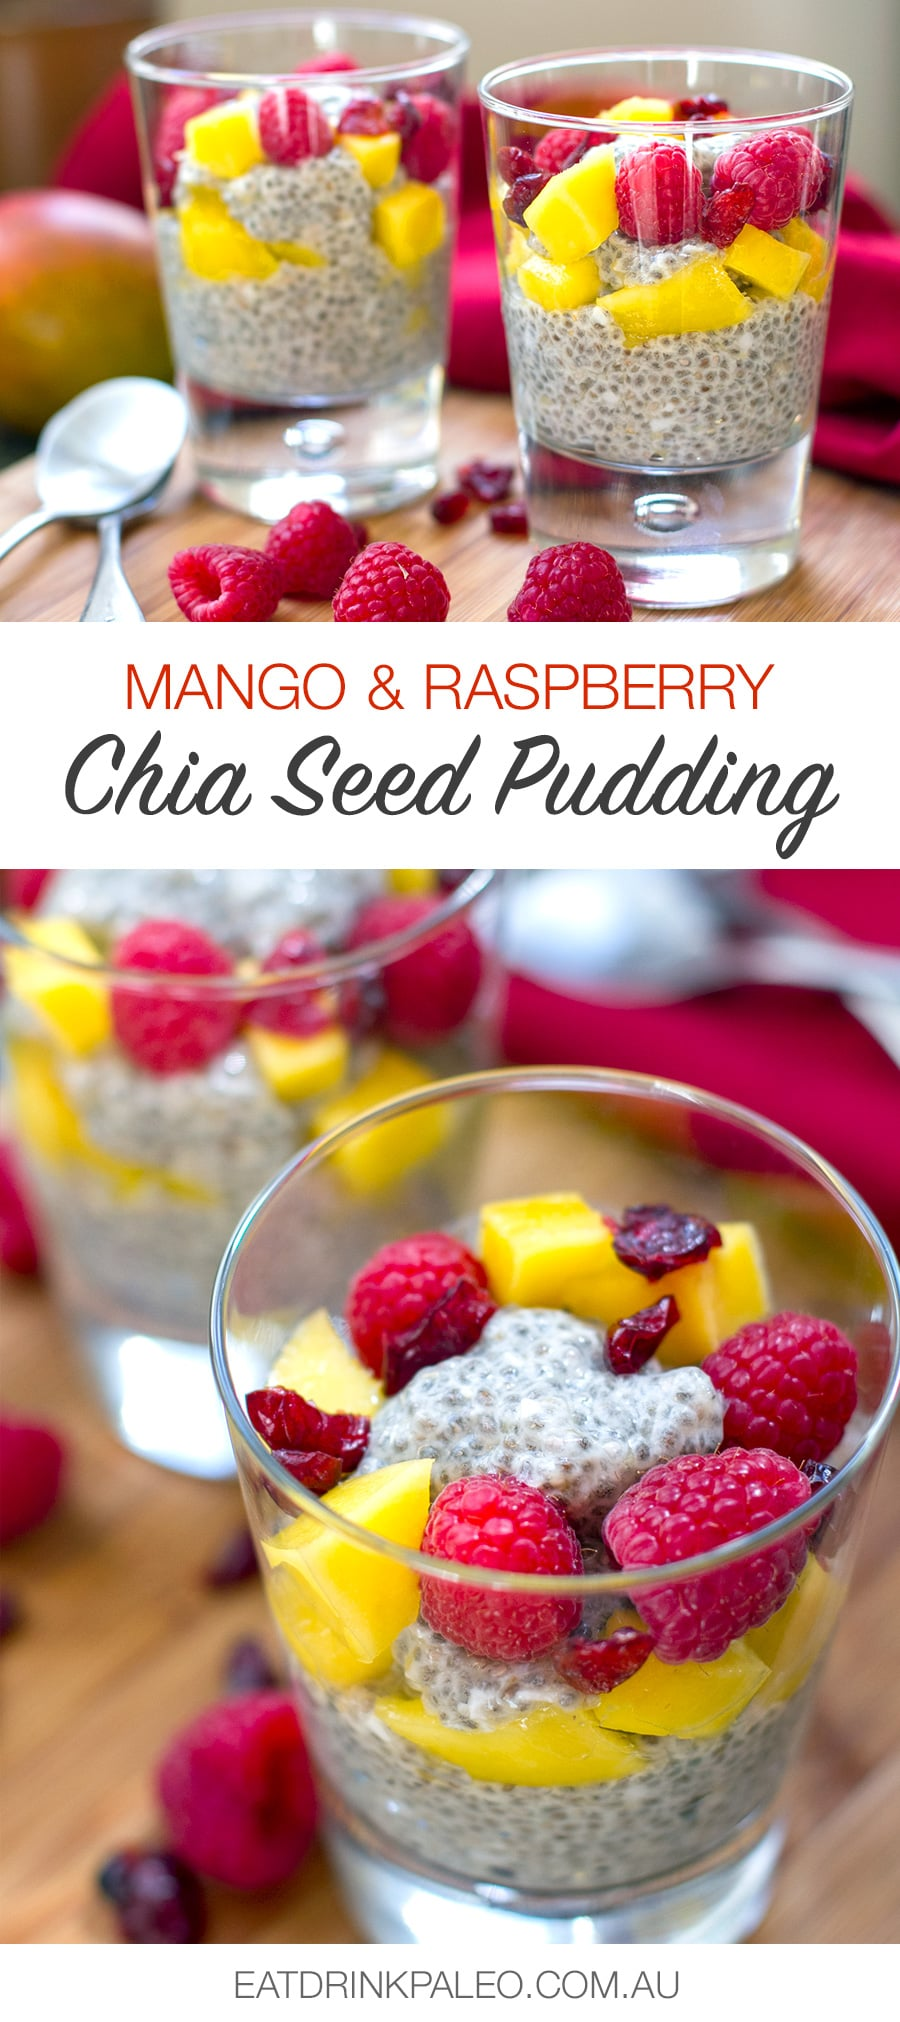 Coconut Mango Chia Seed Pudding (Gluten-free, Paleo, Primal, Dairy-free)